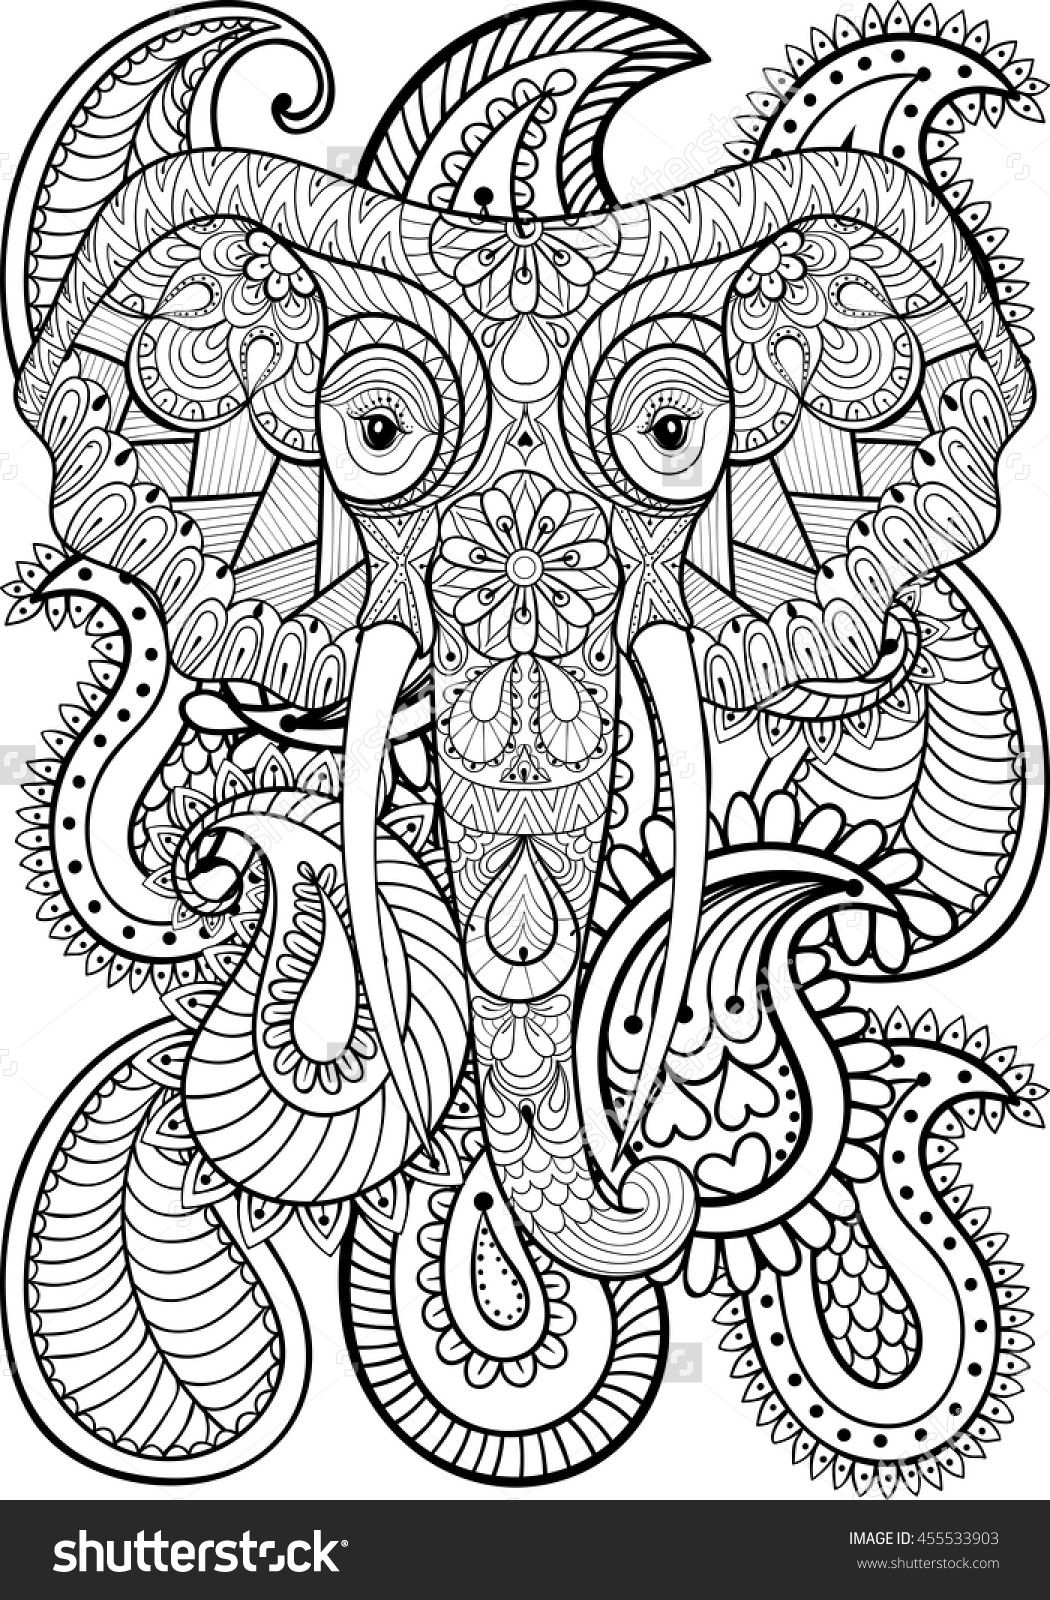 zentangle indian elephant on paisley pattern adult coloring ...